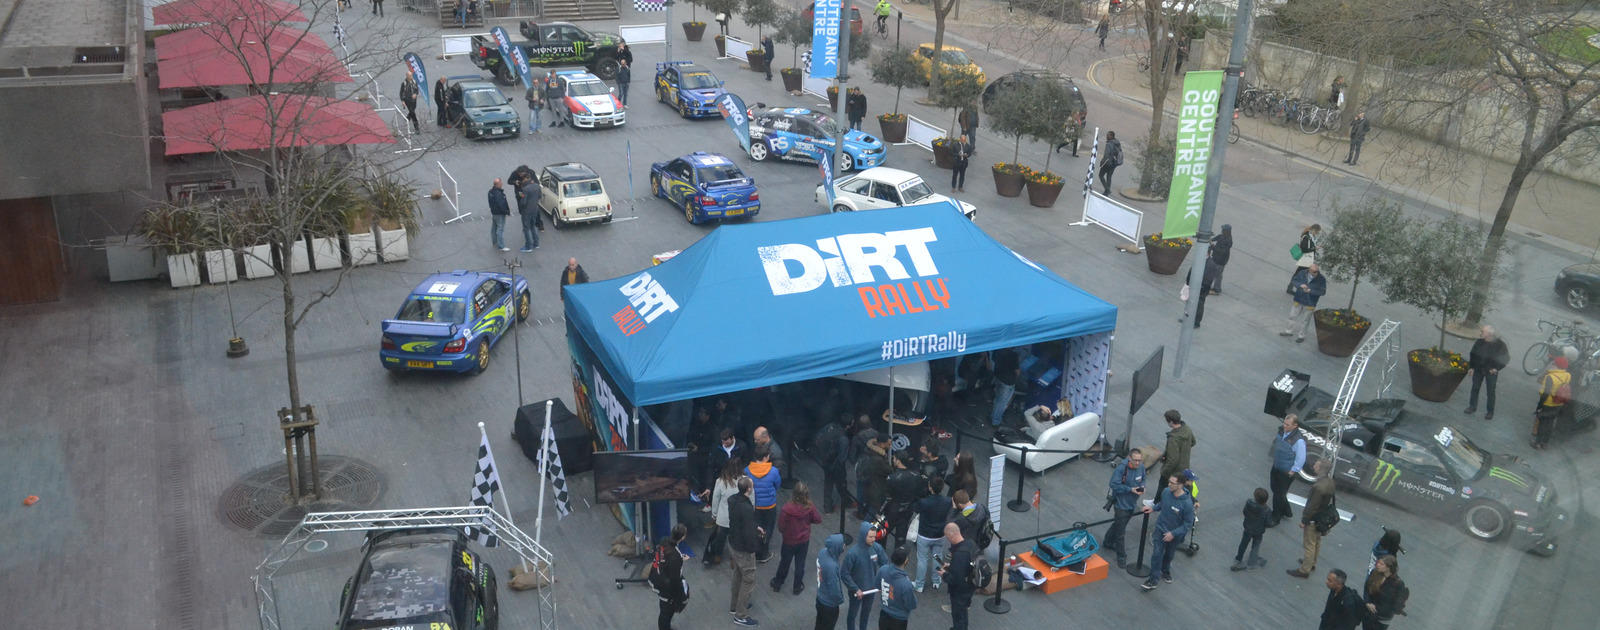 Bird's-eye view of the Dirt Rally experience at the Southbank Centre